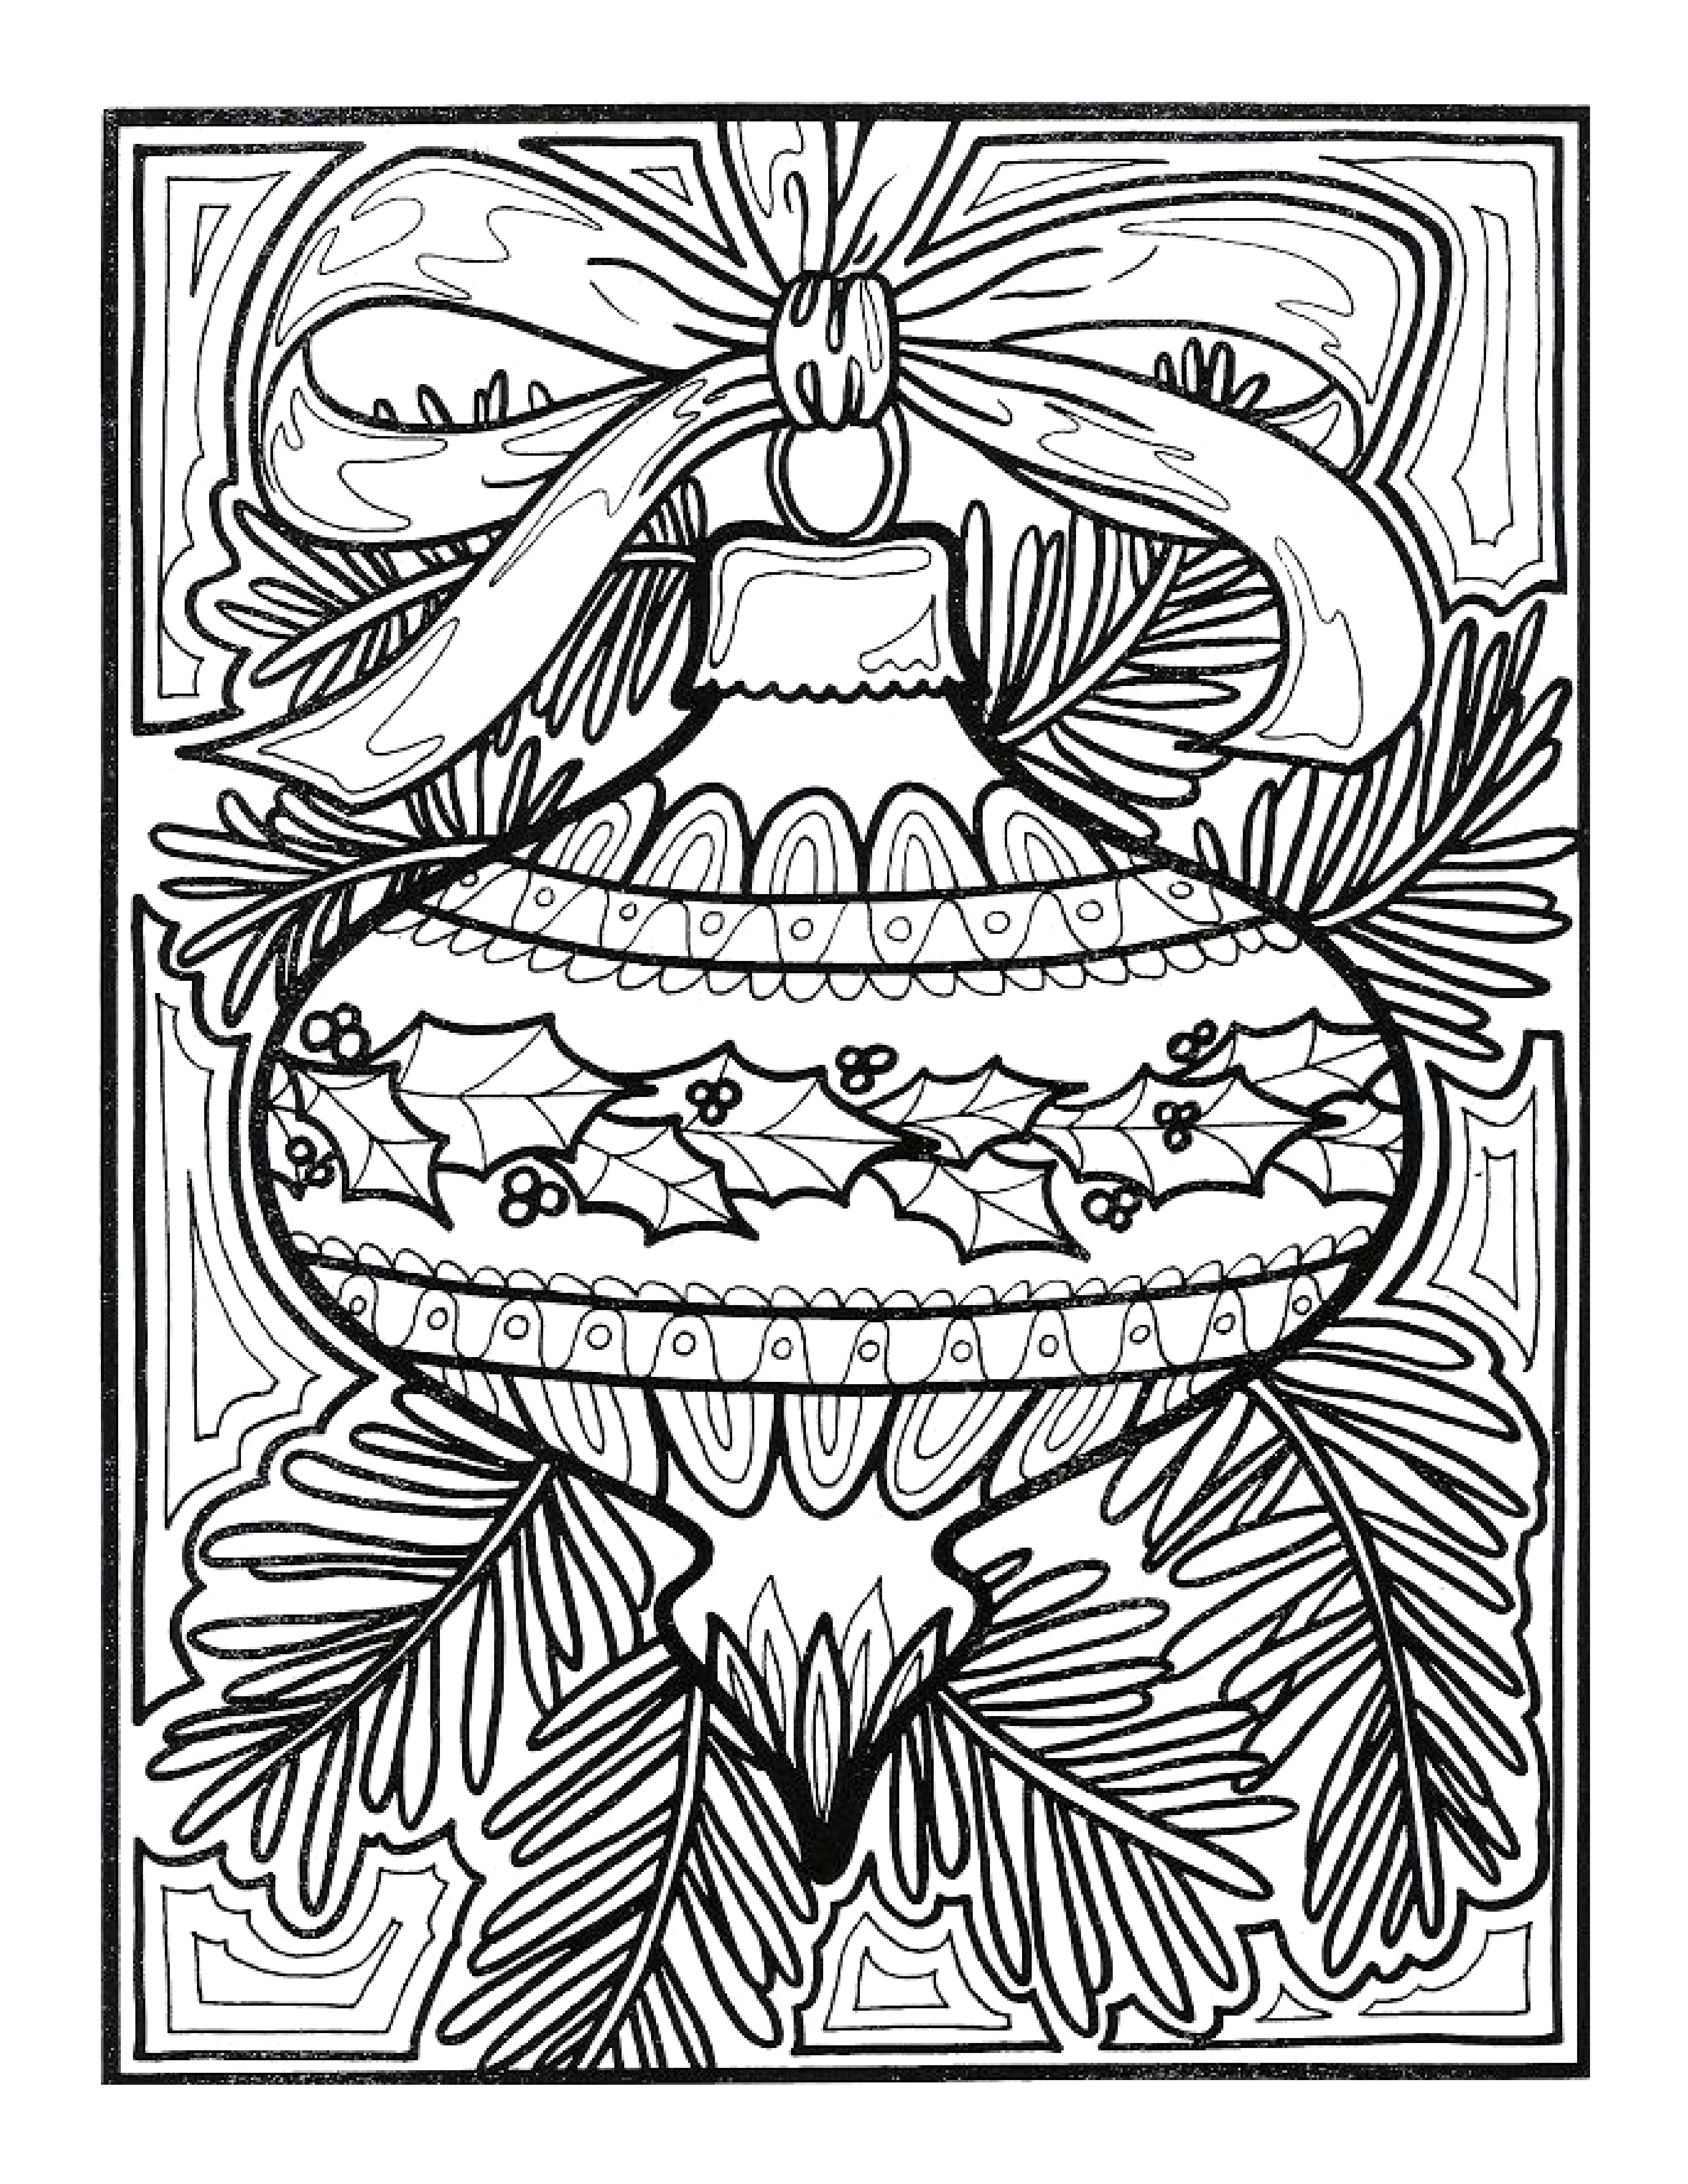 Pin by William Mike Groeneveld on LET'S DOODLE Coloring Pages ...